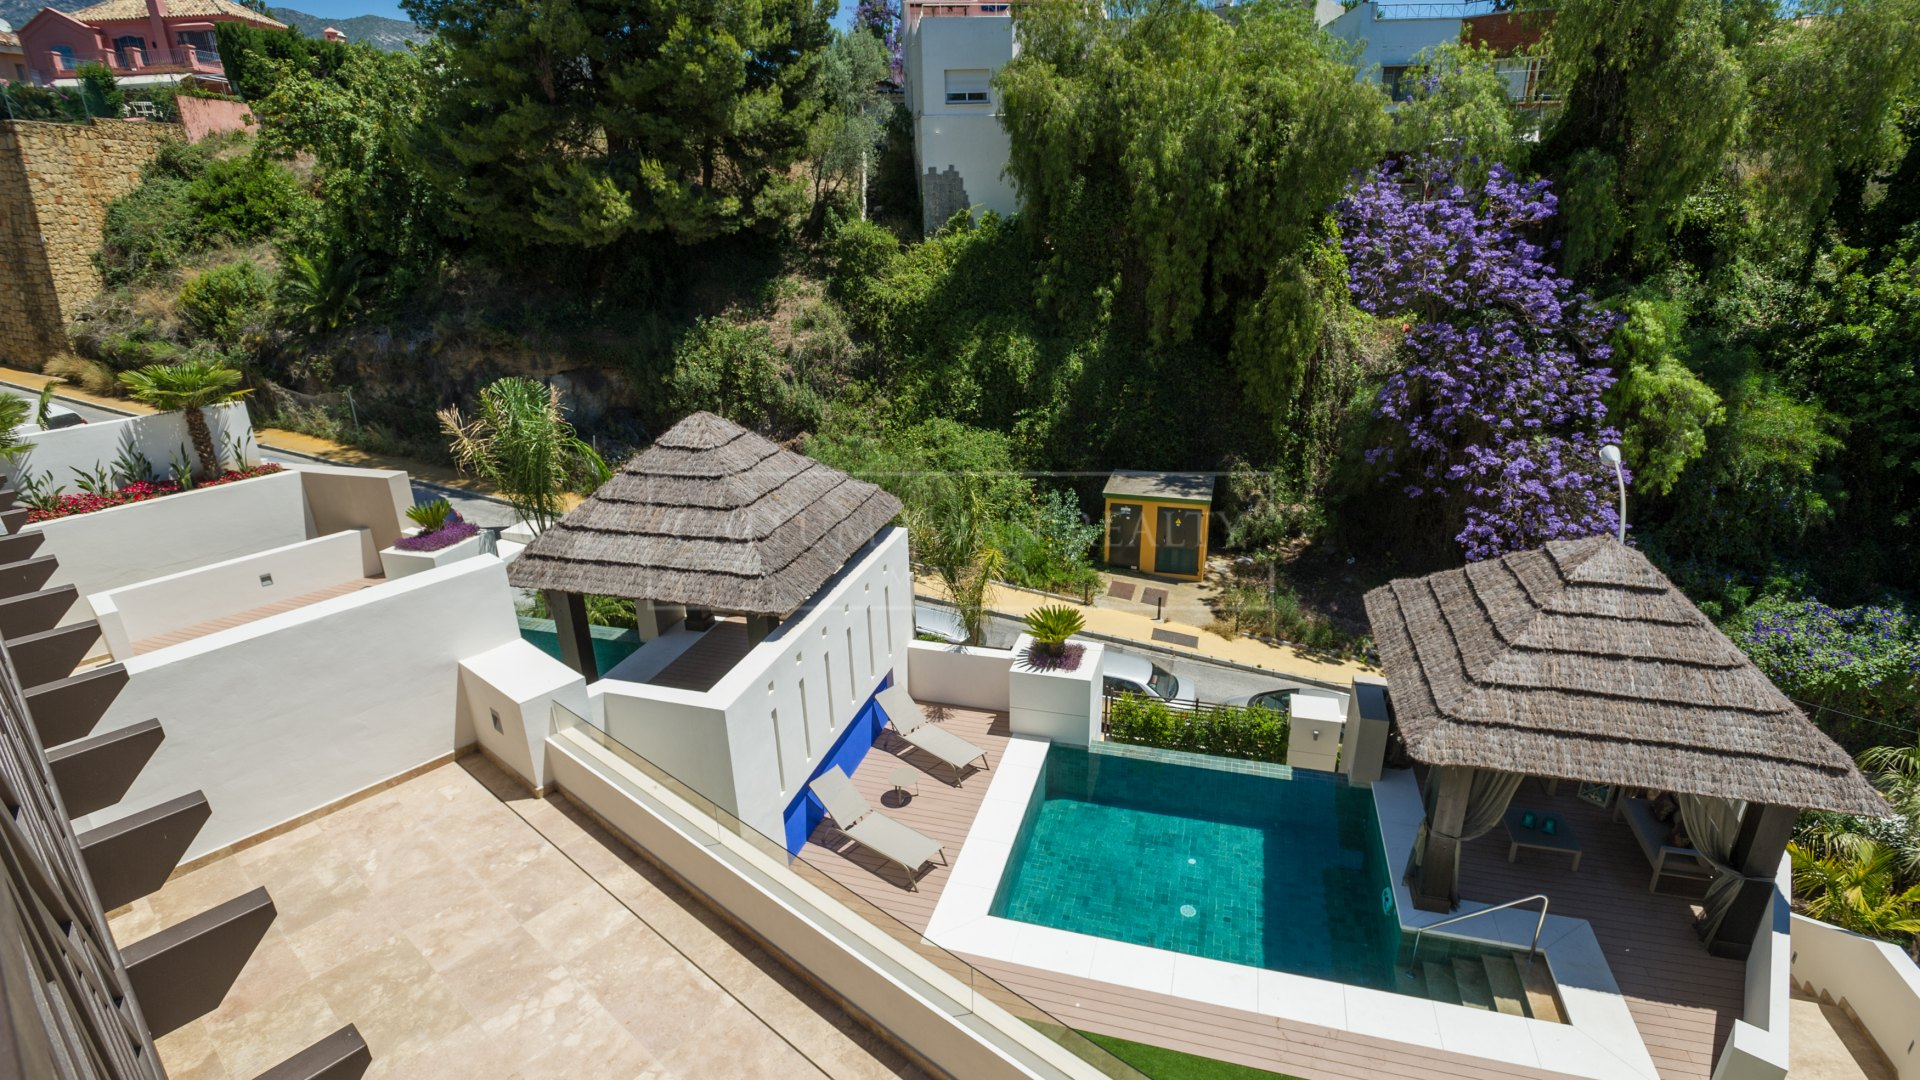 Semi Detached House for sale in Marbella Centro, Marbella